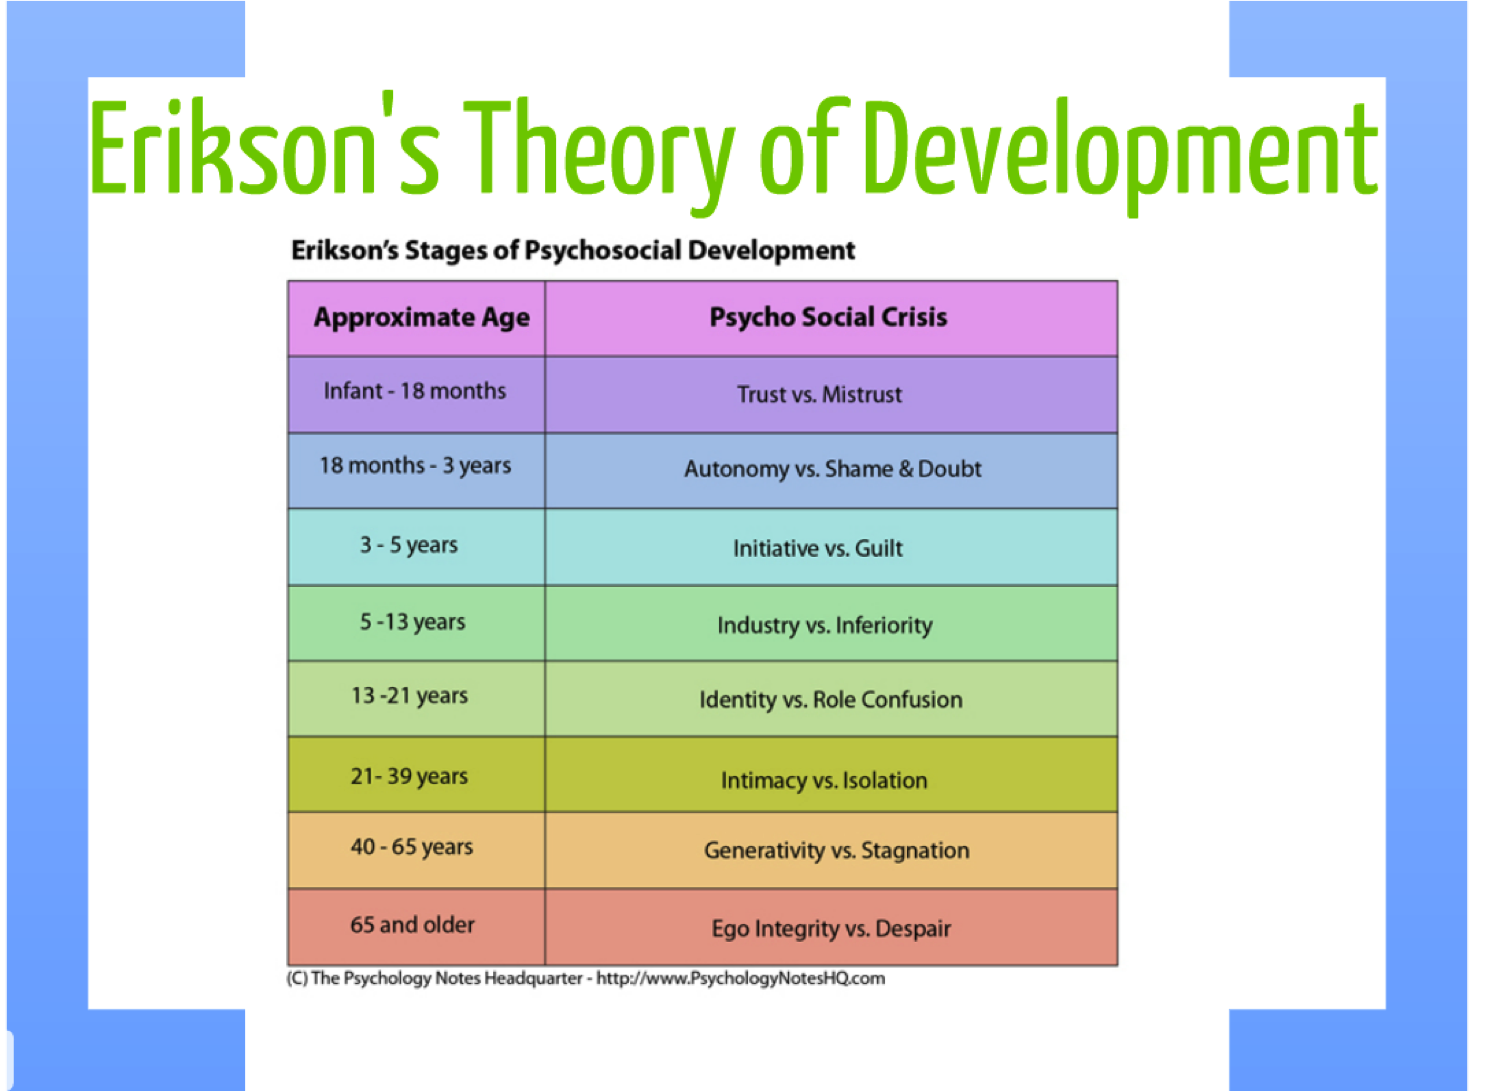 research on the eight stage psychosocial developmental process Erikson's psychosocial stages summary chart erikson's stages of psychosocial  development erik erikson described development that occurs throughout the.